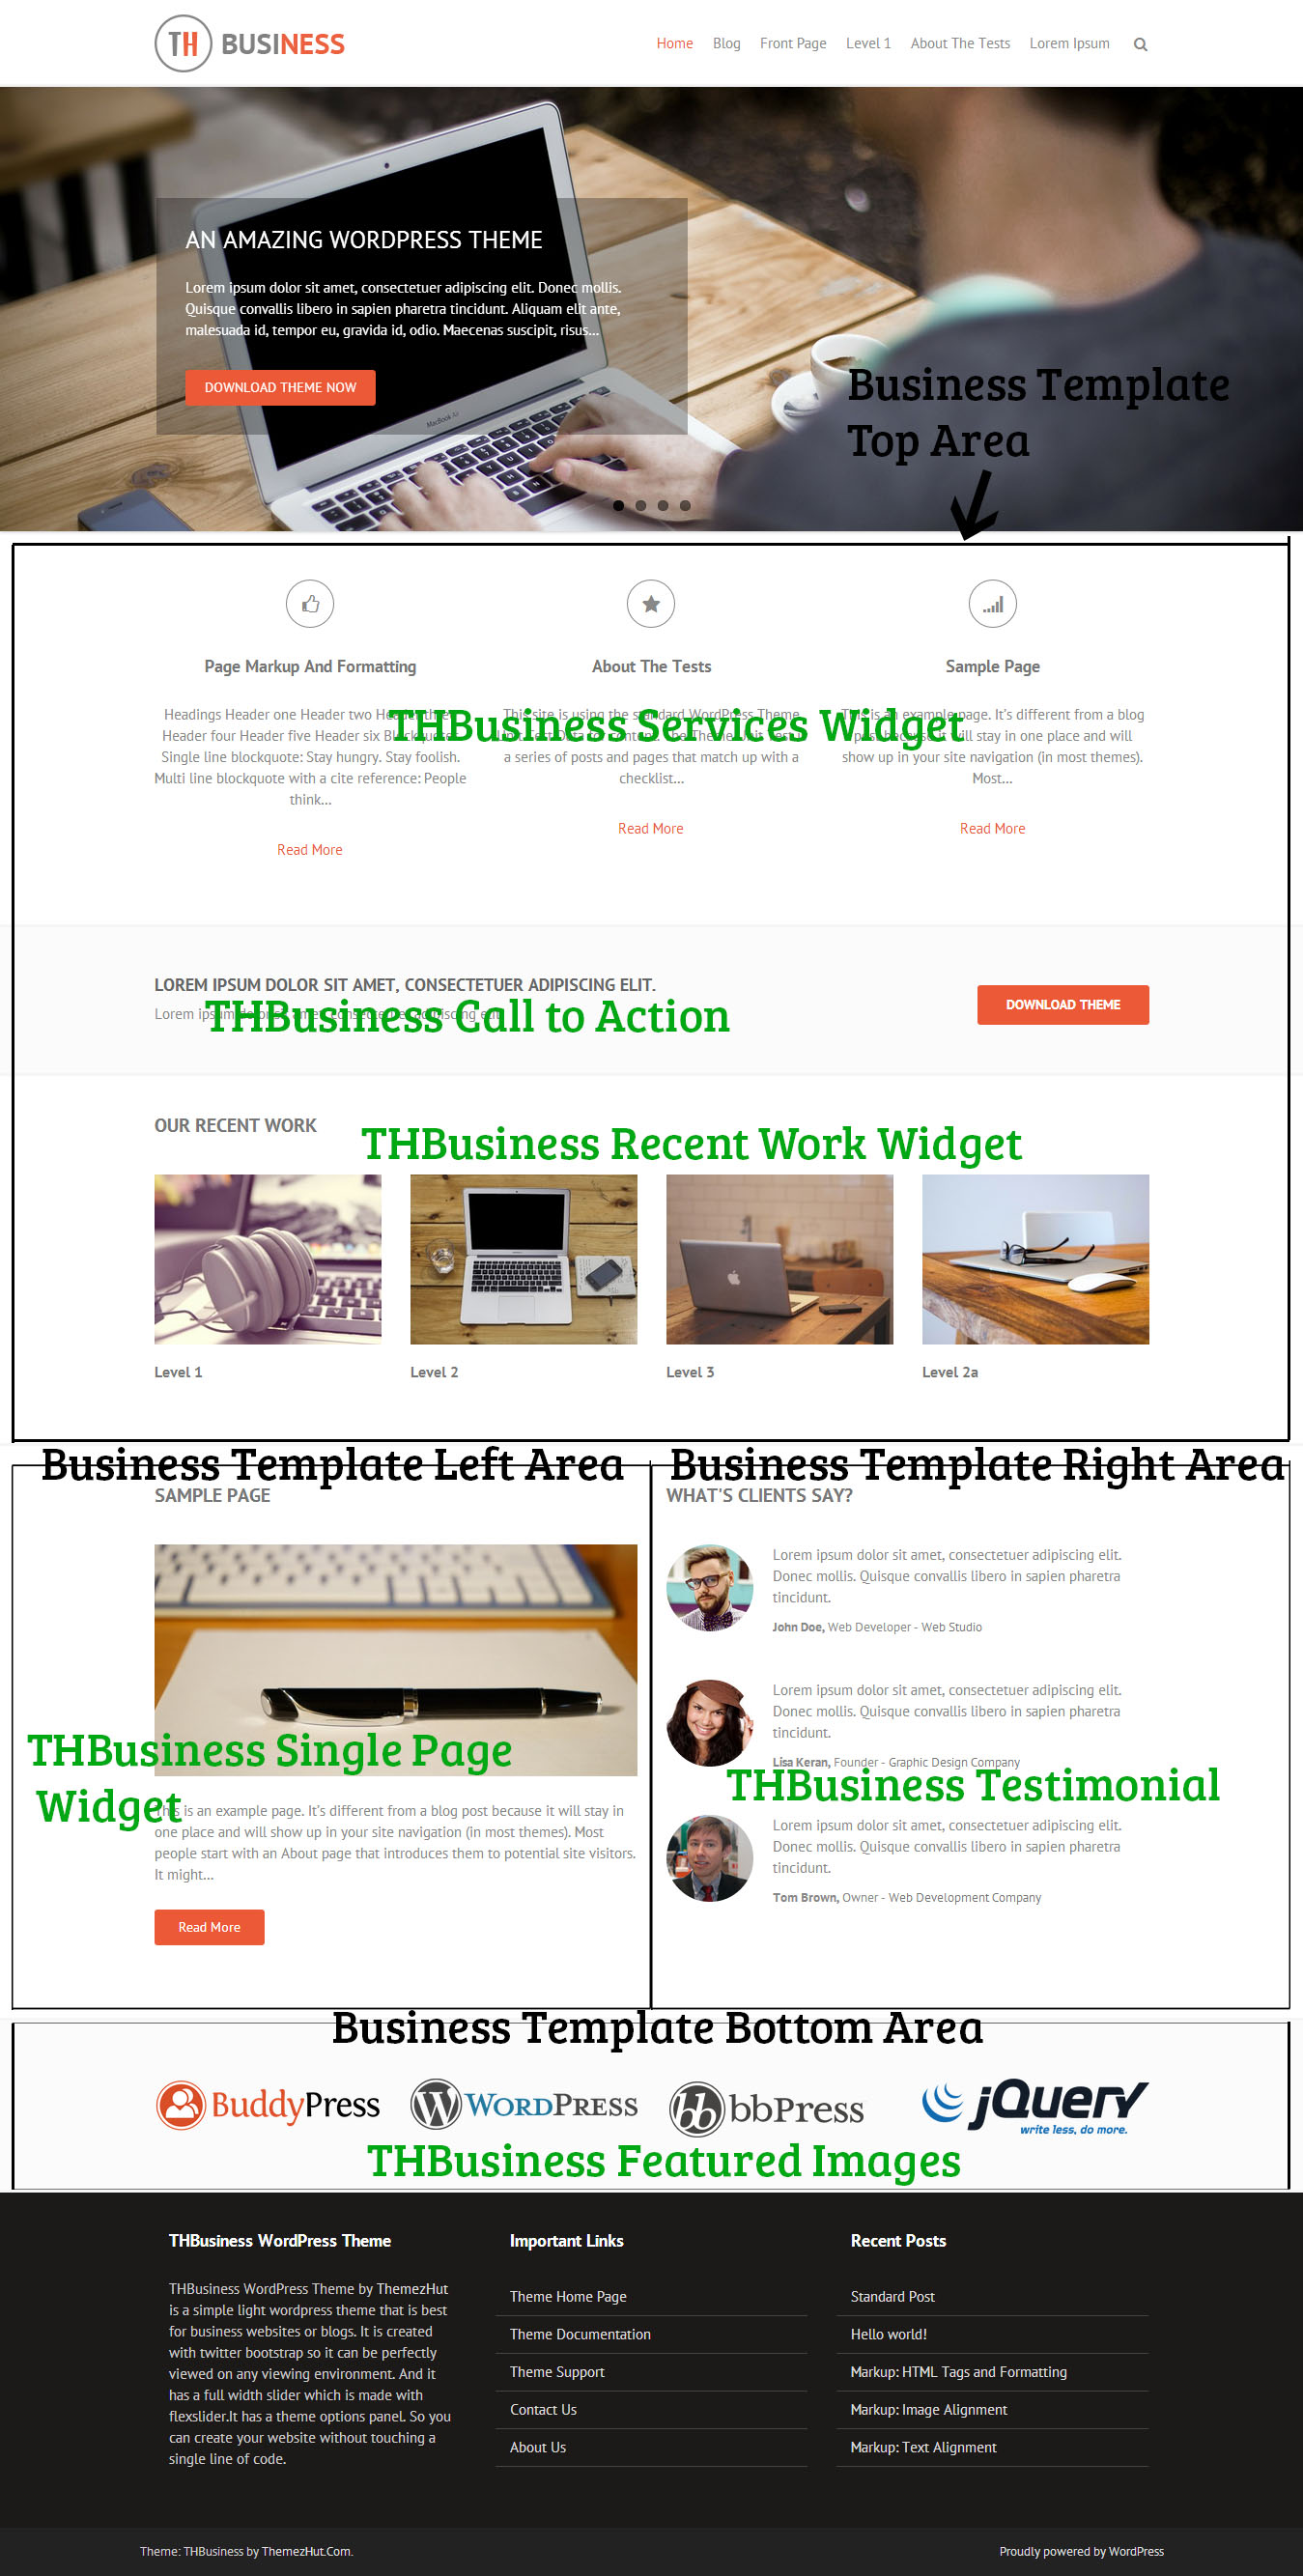 THBusiness Business Template Widget Areas